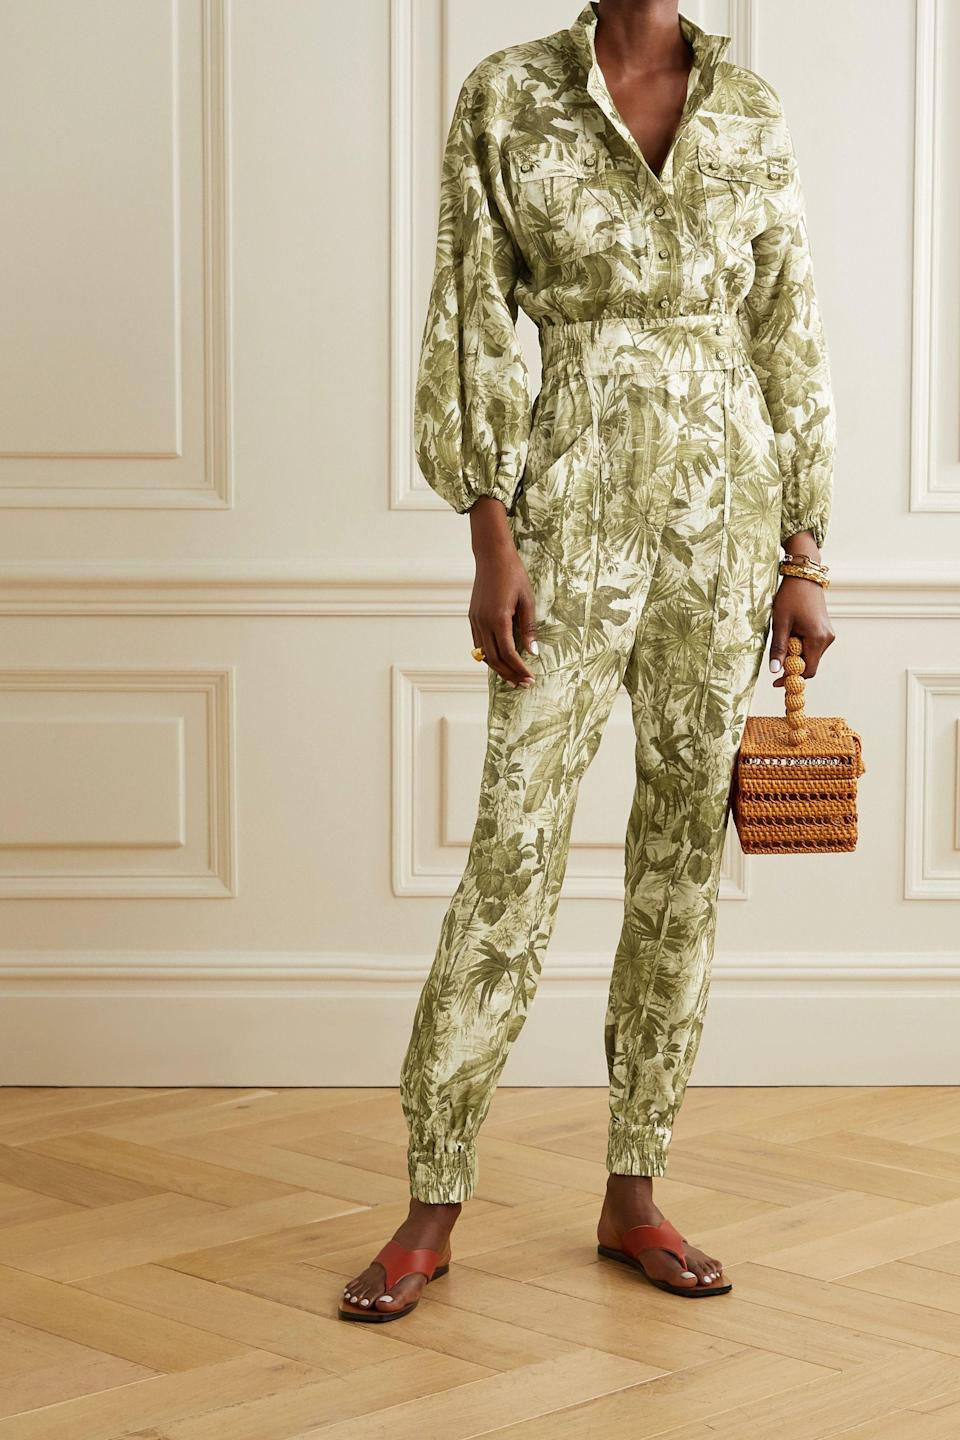 """<p><strong>ZIMMERMANN</strong></p><p>net-a-porter.com</p><p><strong>$570.00</strong></p><p><a href=""""https://go.redirectingat.com?id=74968X1596630&url=https%3A%2F%2Fwww.net-a-porter.com%2Fen-us%2Fshop%2Fproduct%2Fzimmermann%2Fclothing%2Ffull-length%2Fbrighton-printed-linen-jumpsuit%2F23471478575737622&sref=https%3A%2F%2Fwww.cosmopolitan.com%2Fstyle-beauty%2Ffashion%2Fg36618322%2Fnet-a-porter-spring-sale-2021%2F"""" rel=""""nofollow noopener"""" target=""""_blank"""" data-ylk=""""slk:Shop Now"""" class=""""link rapid-noclick-resp"""">Shop Now</a></p><p>Jumpsuits are a gift from the fashion gods, truly. I mean, who knew you could look freakin' bomb while wearing just a single article of clothing?? This work of art by Zimmermann is a testament to that and will be absolutely fire on that upcoming island vacay.</p>"""